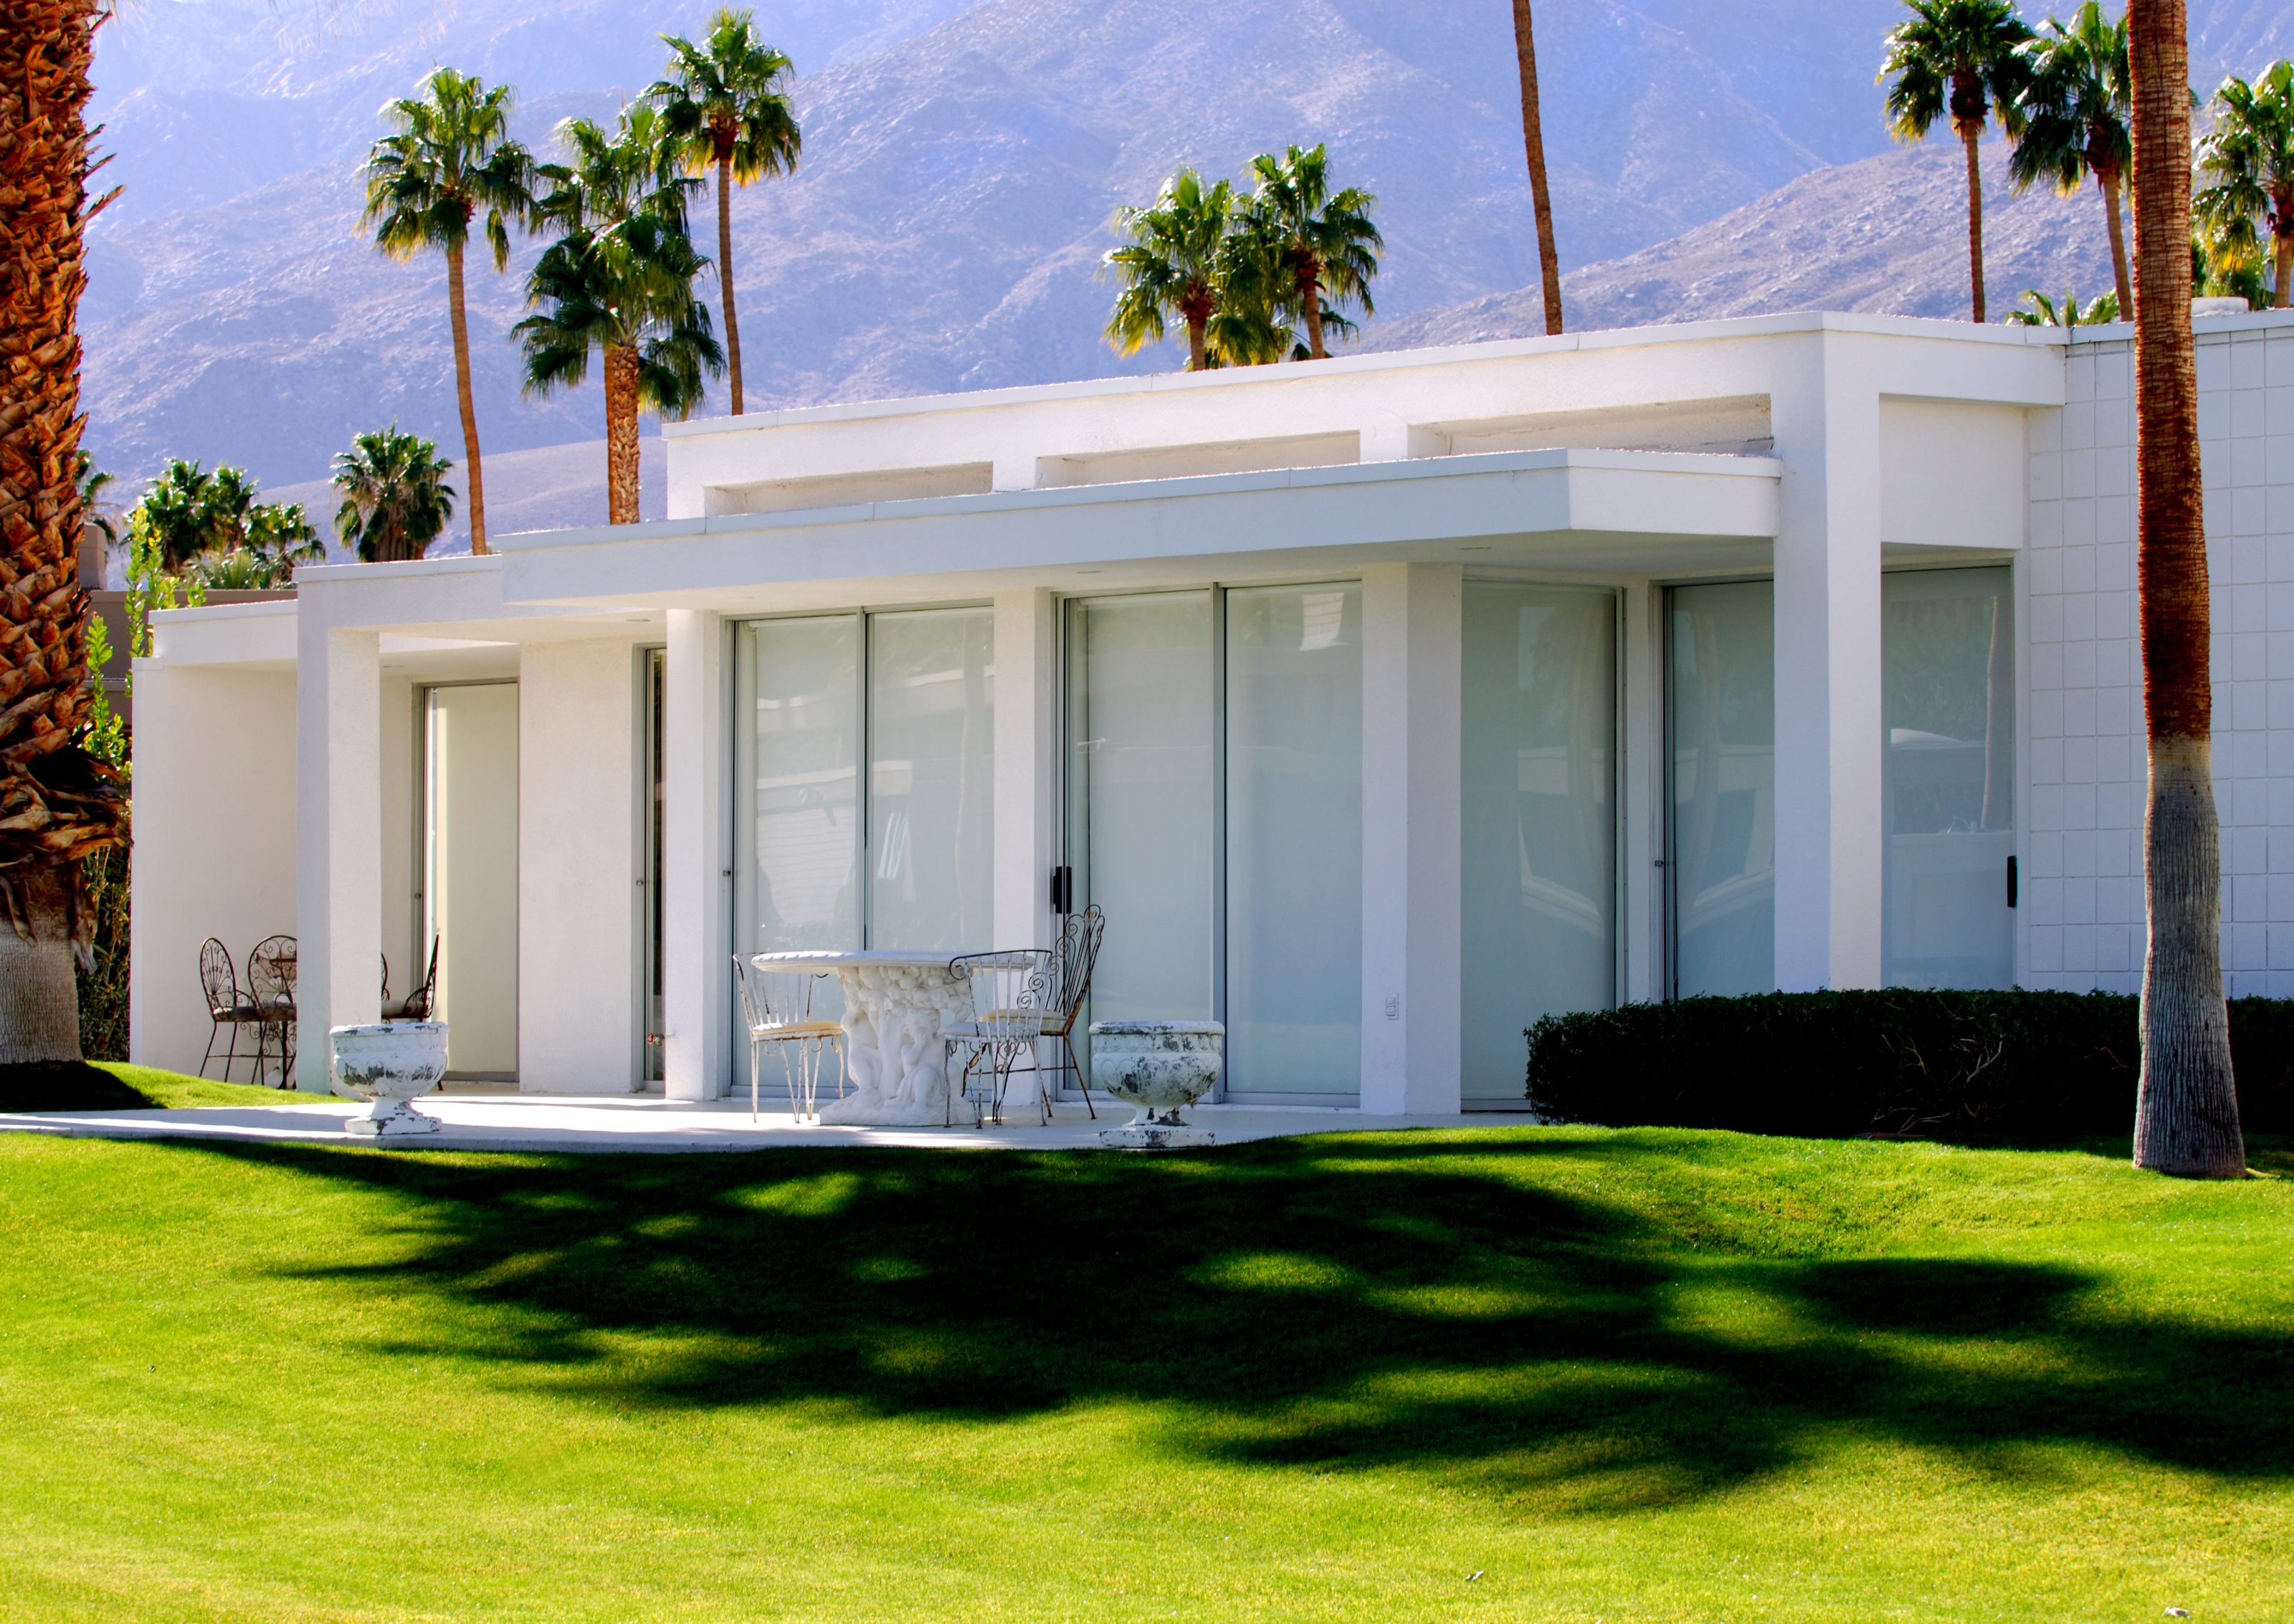 Condo in South Palm Springs